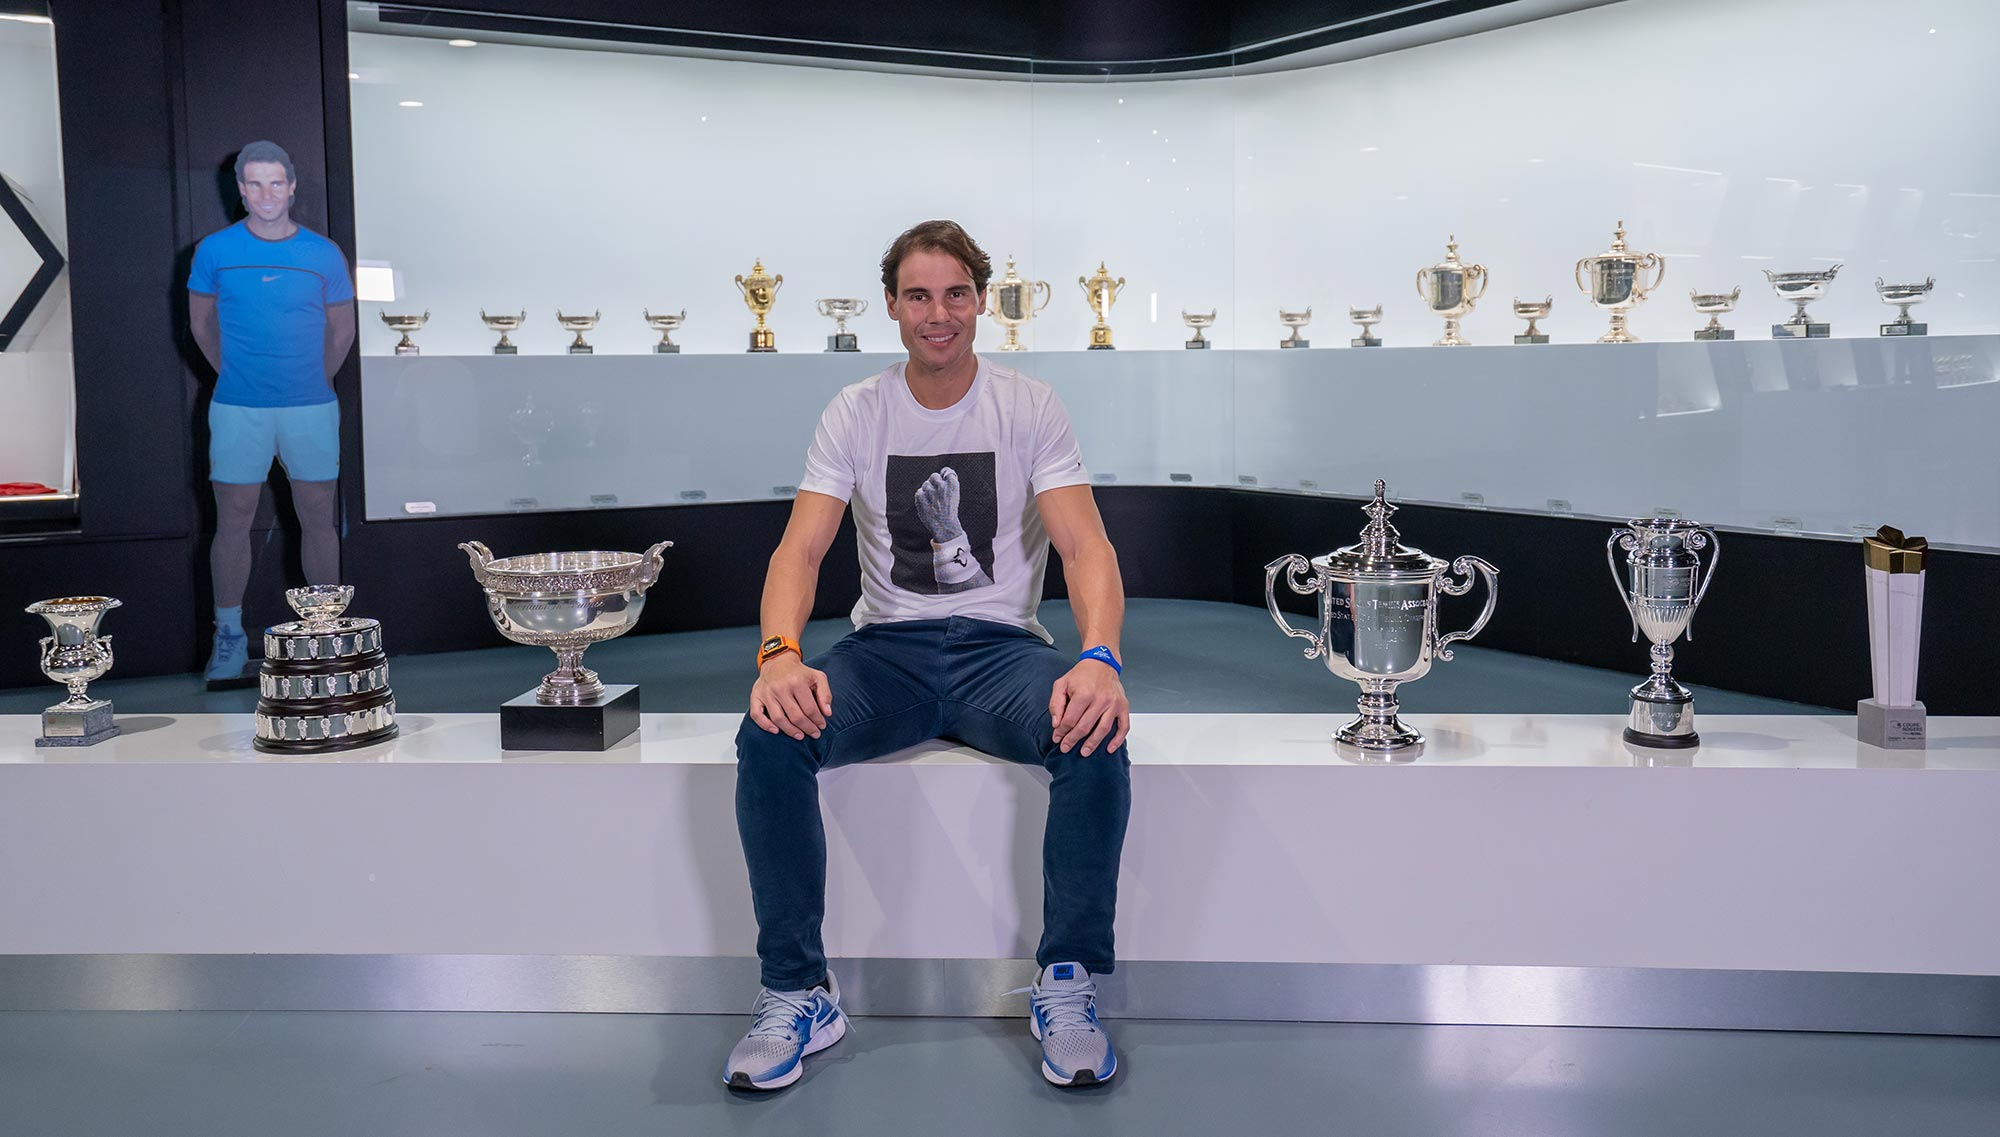 The Rafa Nadal Museum Xperience immortalises an historic 2019